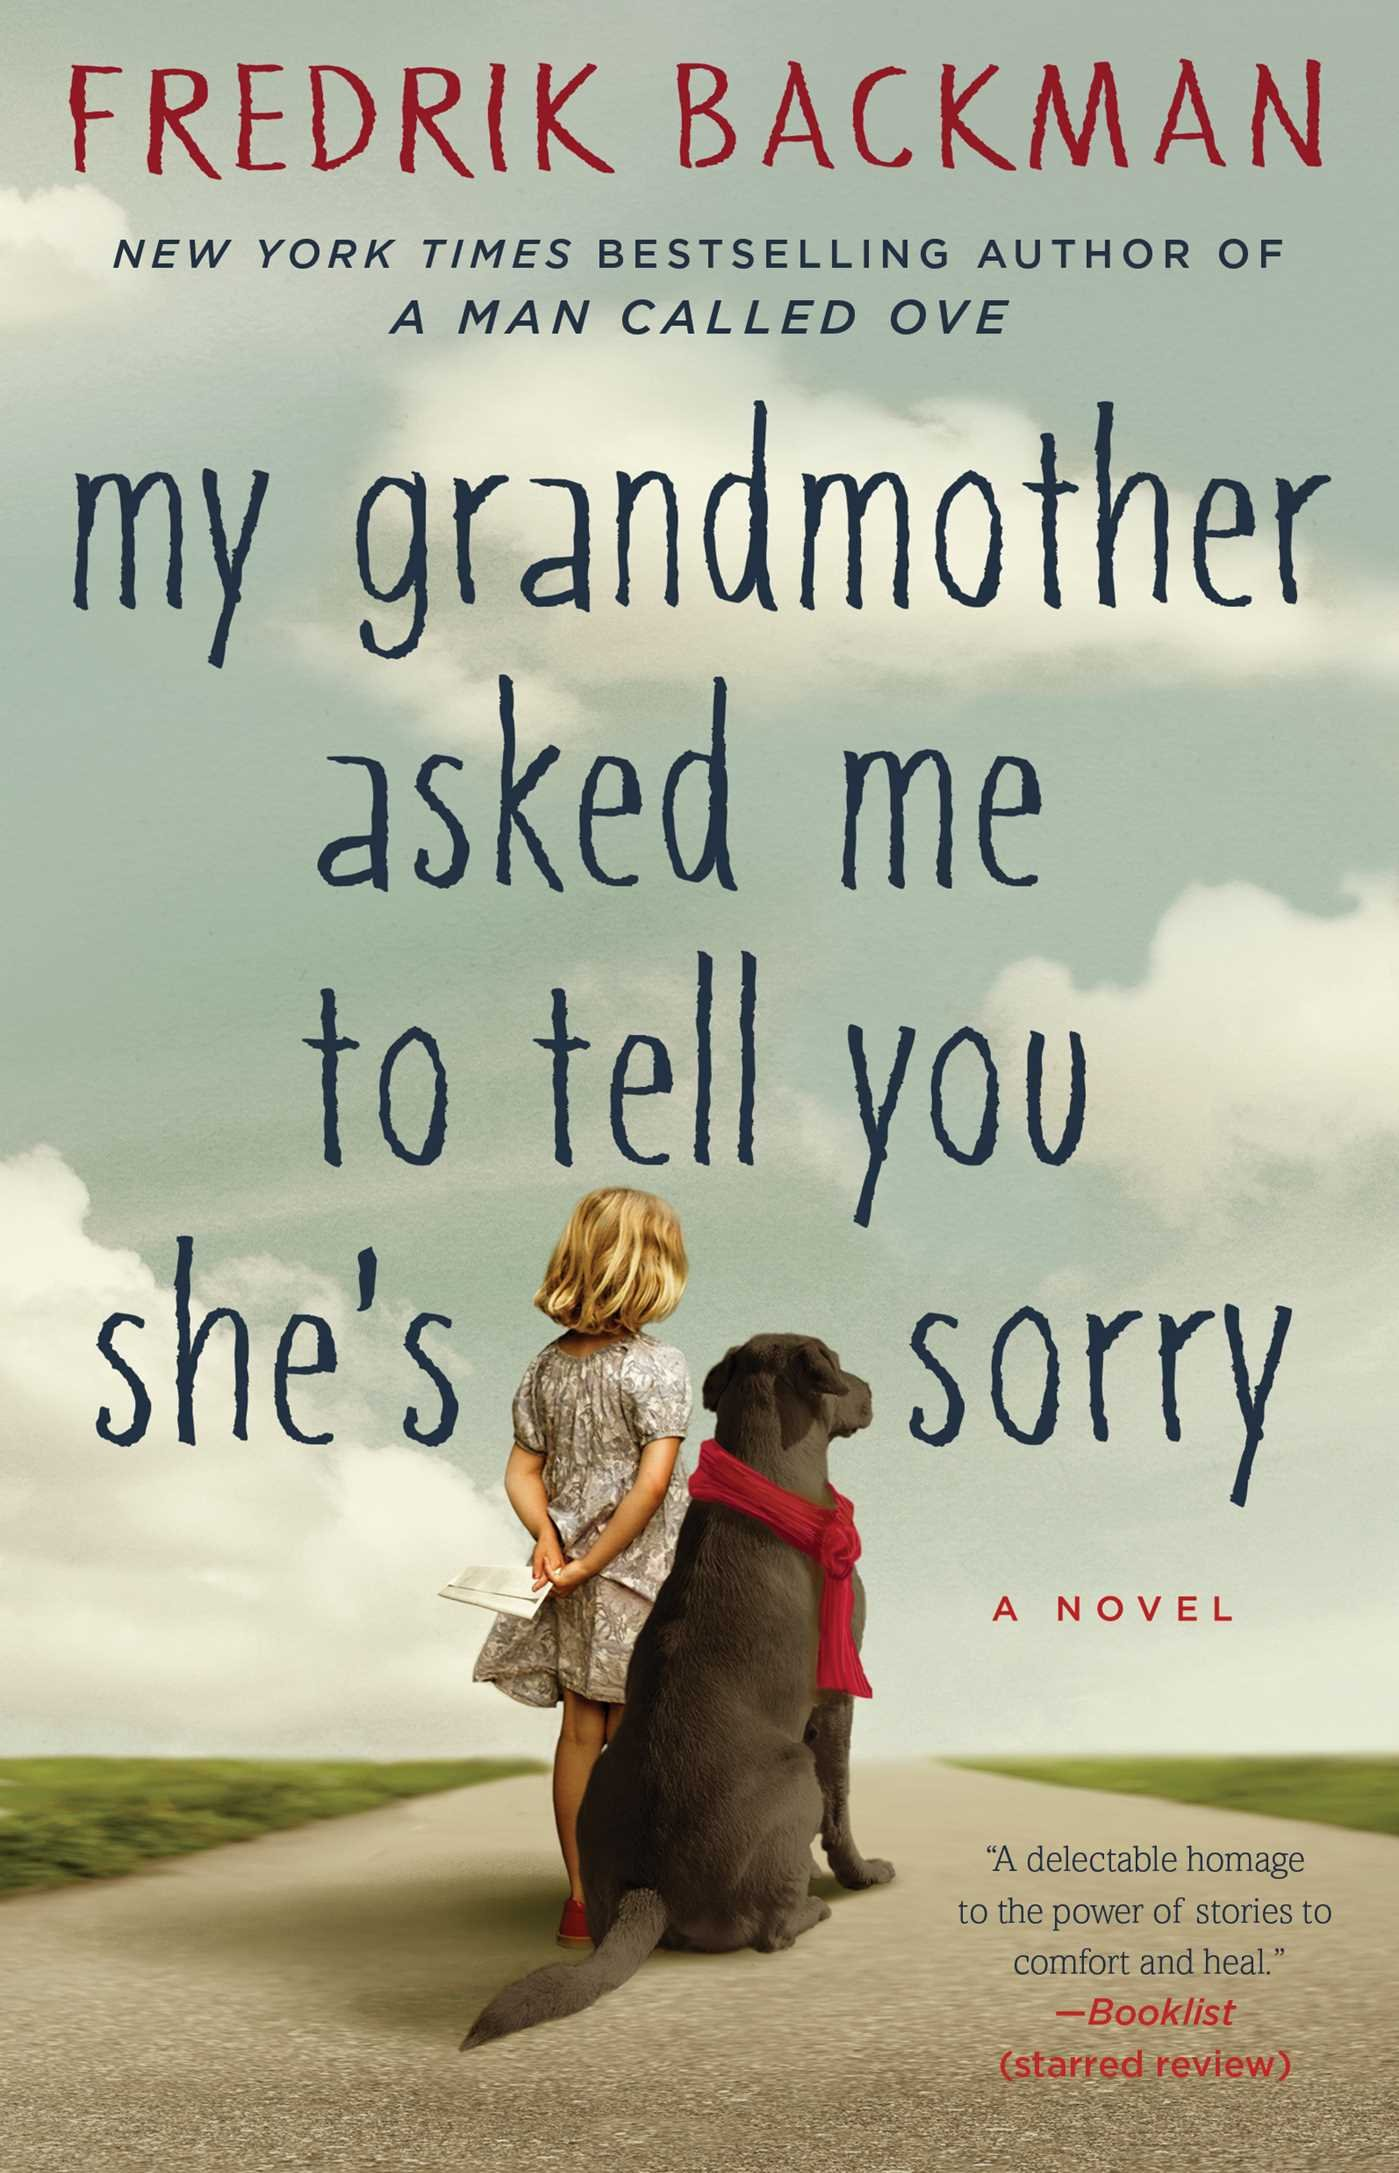 My Grandmother Asked Me to Tell You She's Sorry by Frederik Backman book cover